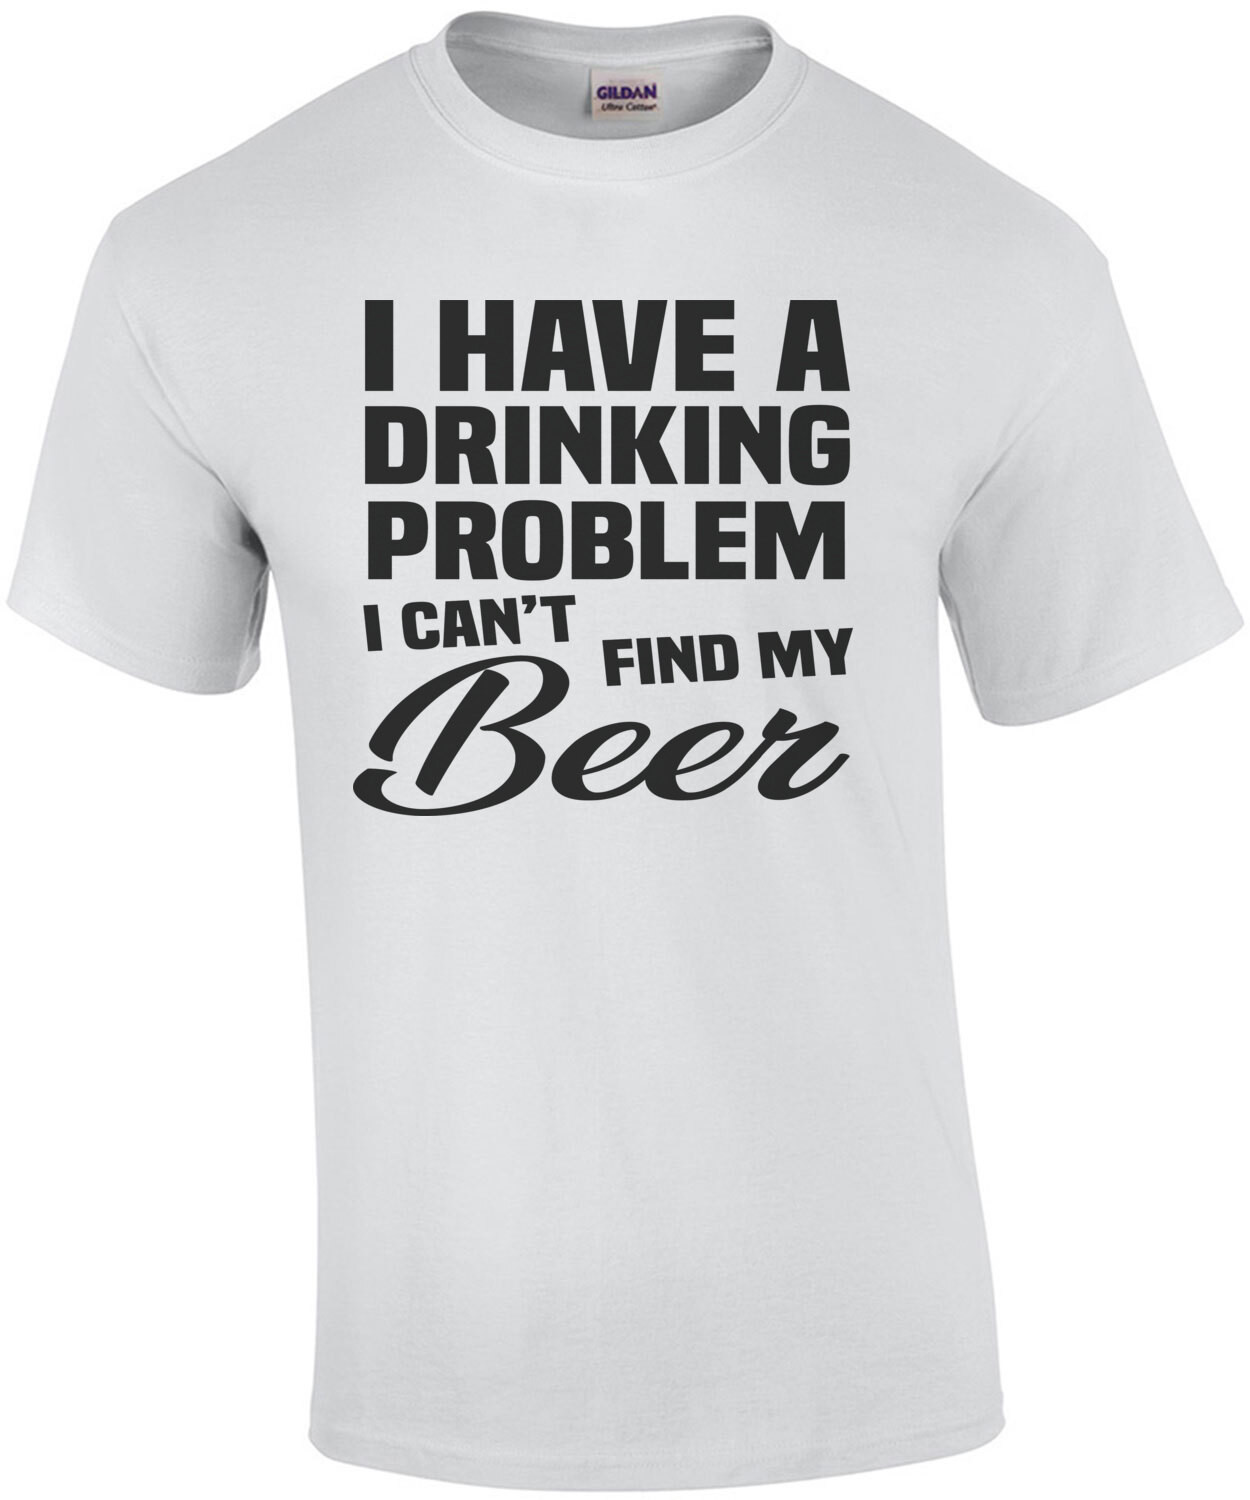 I have a drinking problem - I can't find my beer - funny beer t-shirt